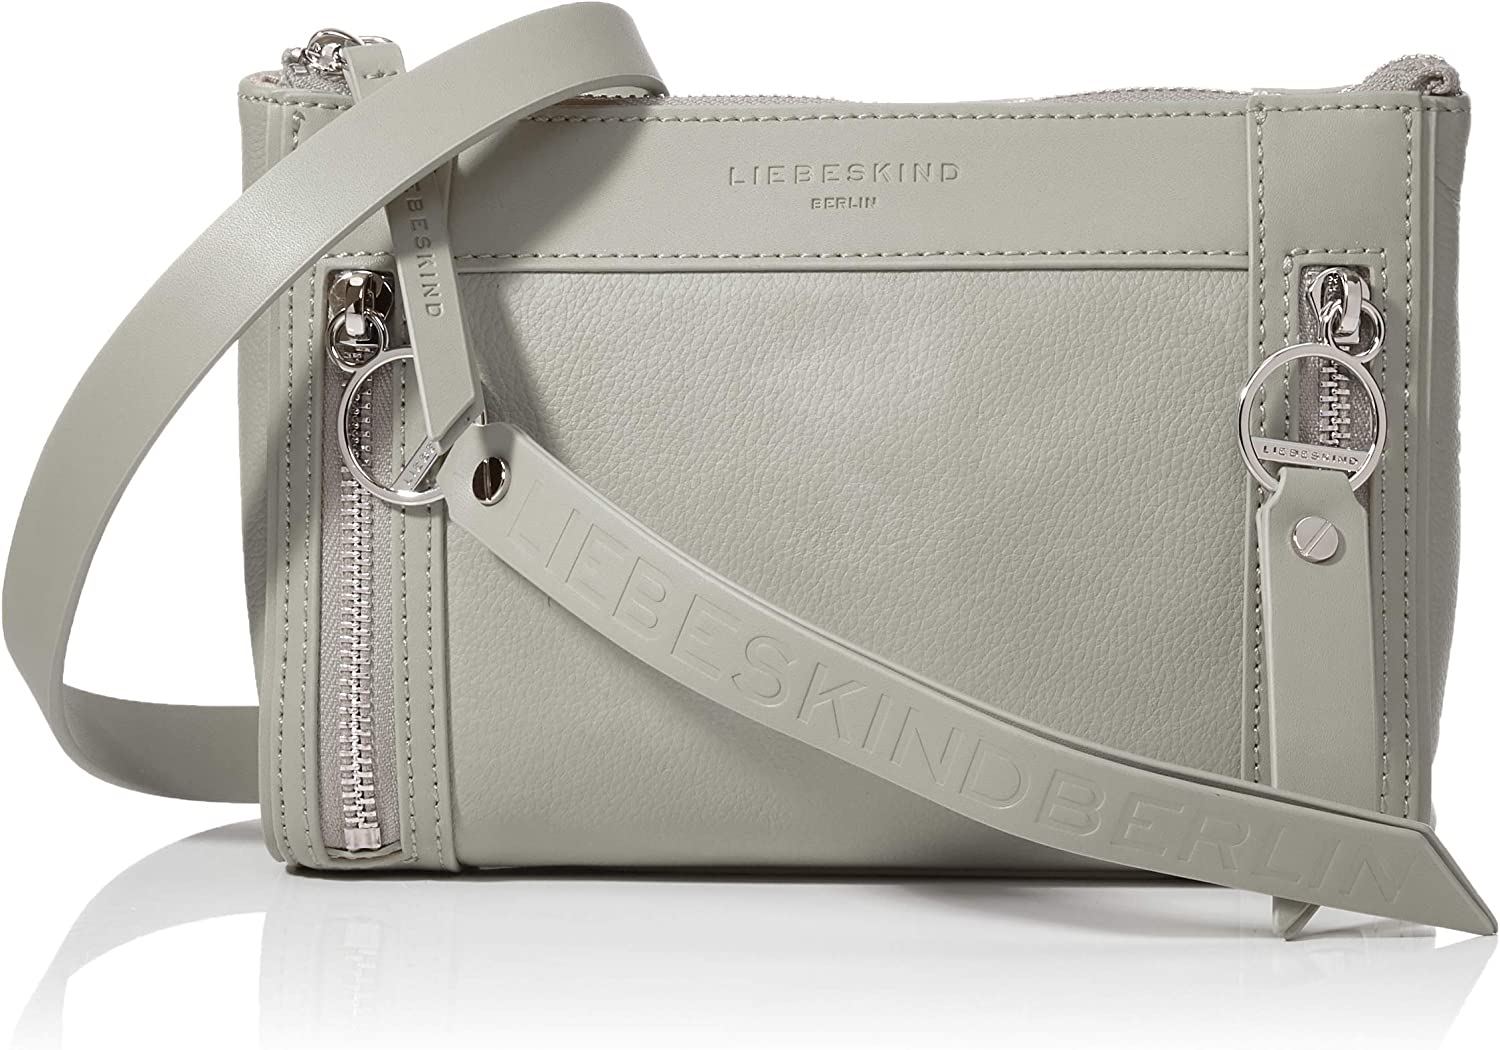 Liebeskind Berlin Women's Frcrosss Frame CrossBody Bag